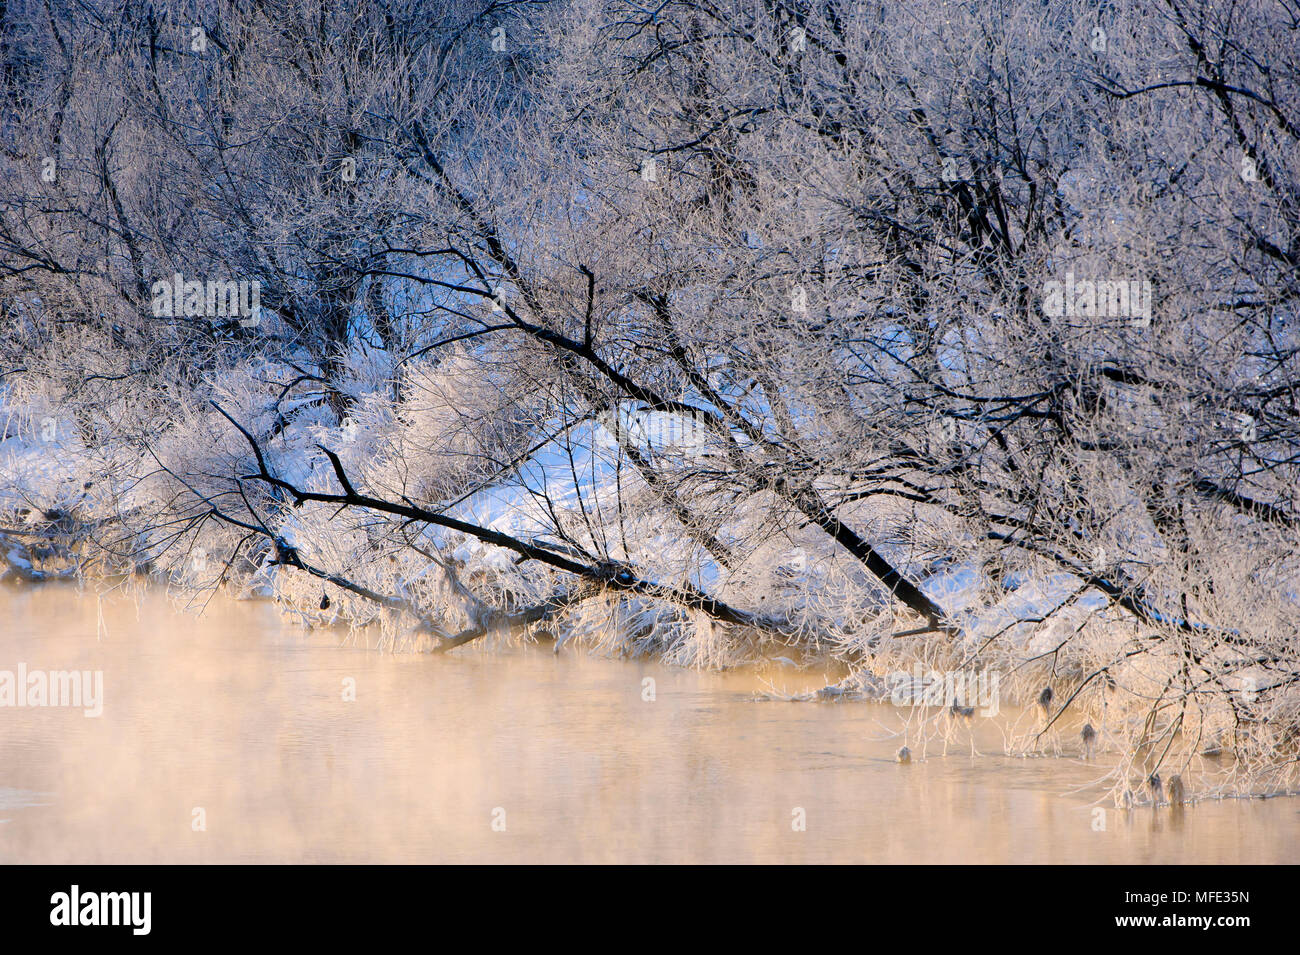 Frost on trees along river, Japan. - Stock Image